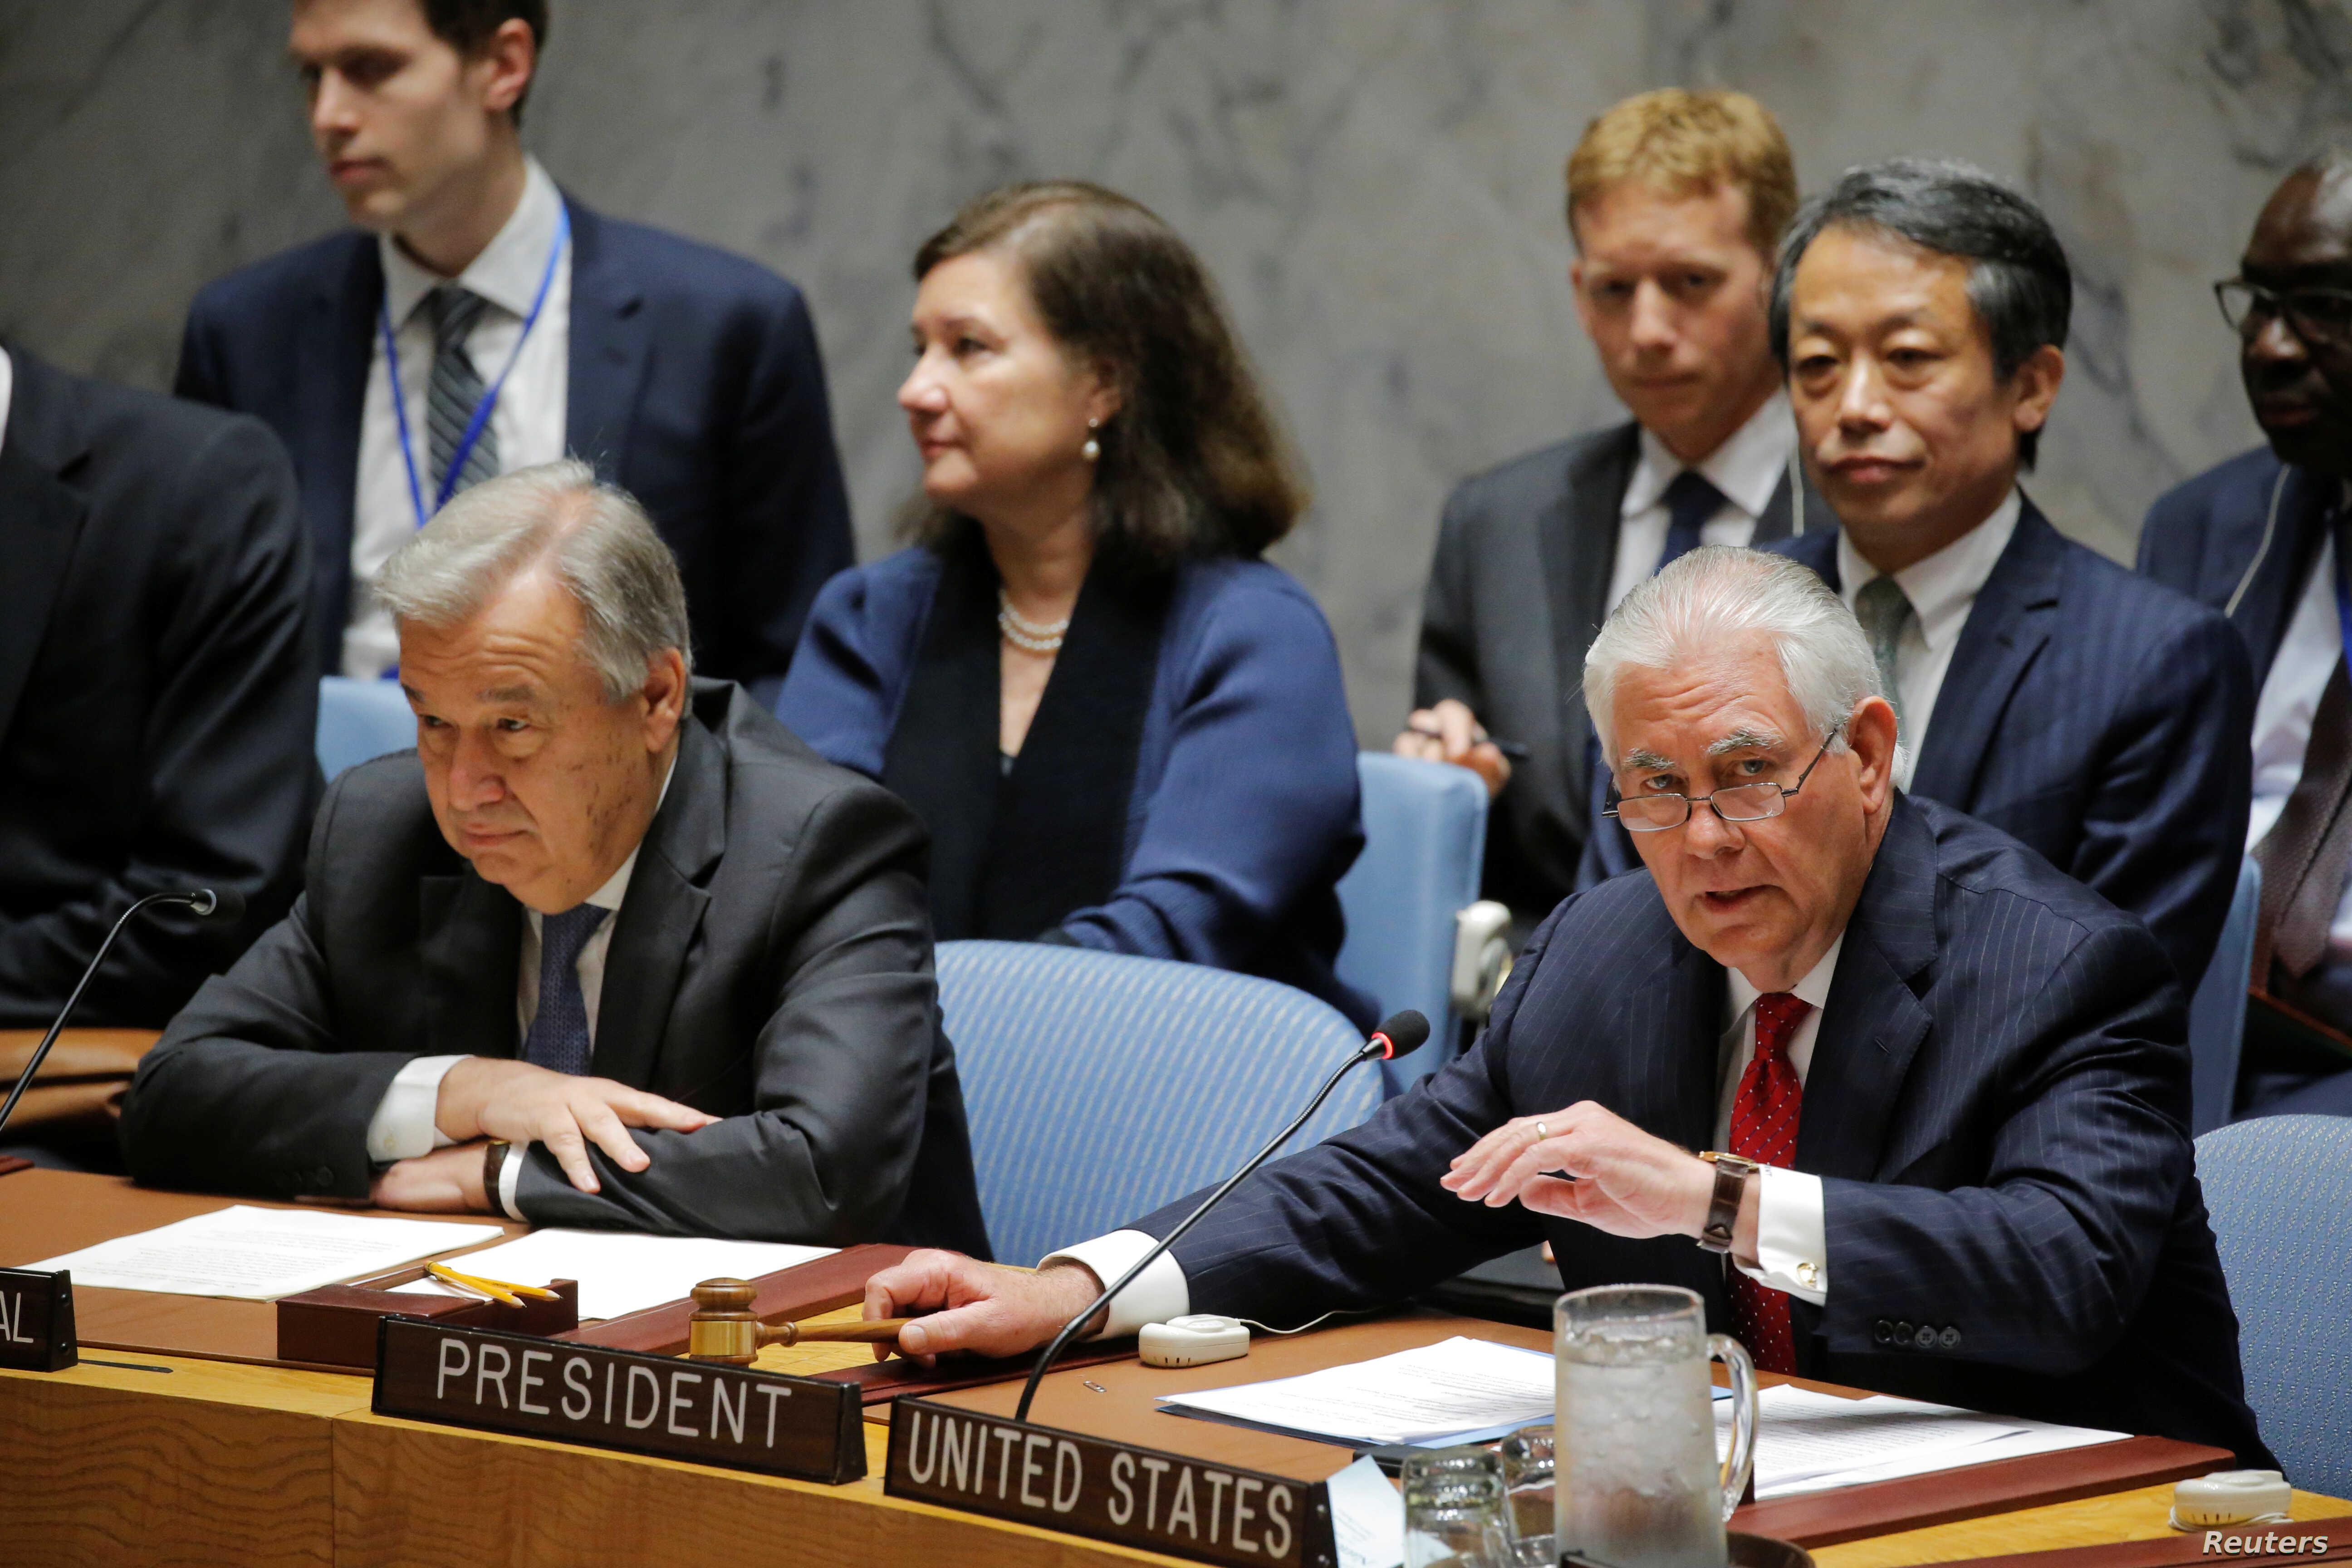 U.S. Secretary of State Rex Tillerson (R) speaks next to U.N. Secretary-General Antonio Guterres during a Security Council meeting on the situation in North Korea at the United Nations (U.N.) in New York, April 28, 2017.